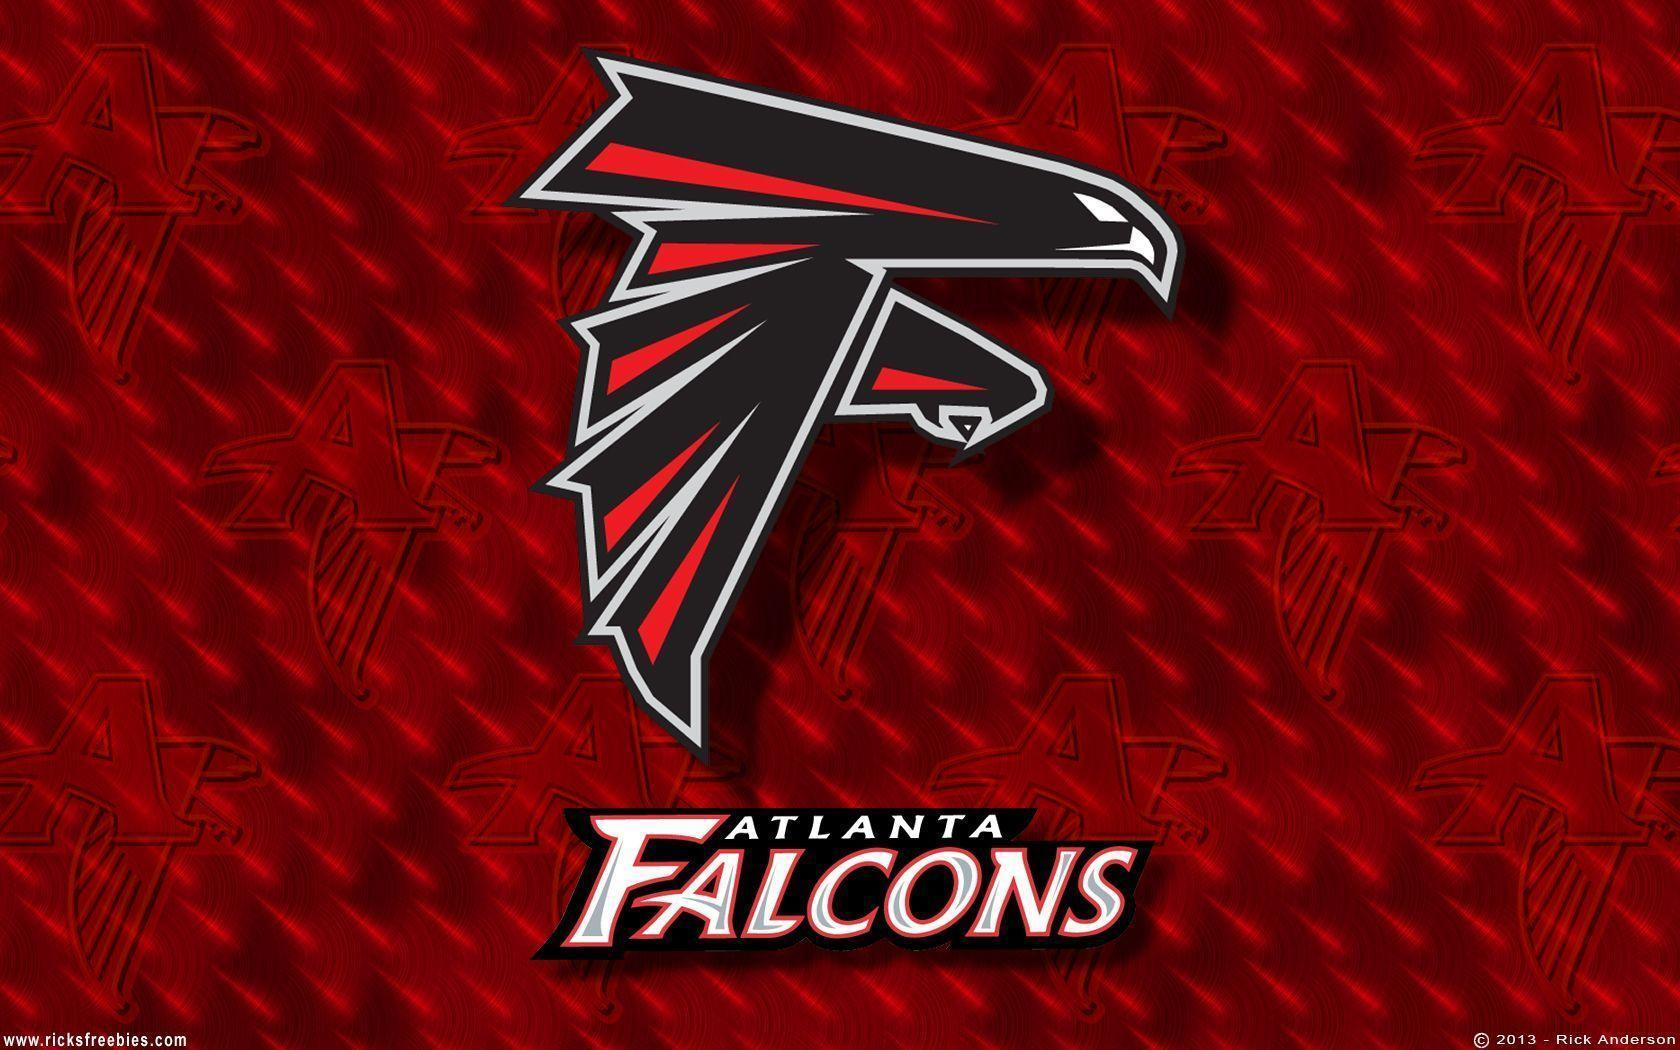 Atlanta Falcons Wallpapers - Wallpaper Cave